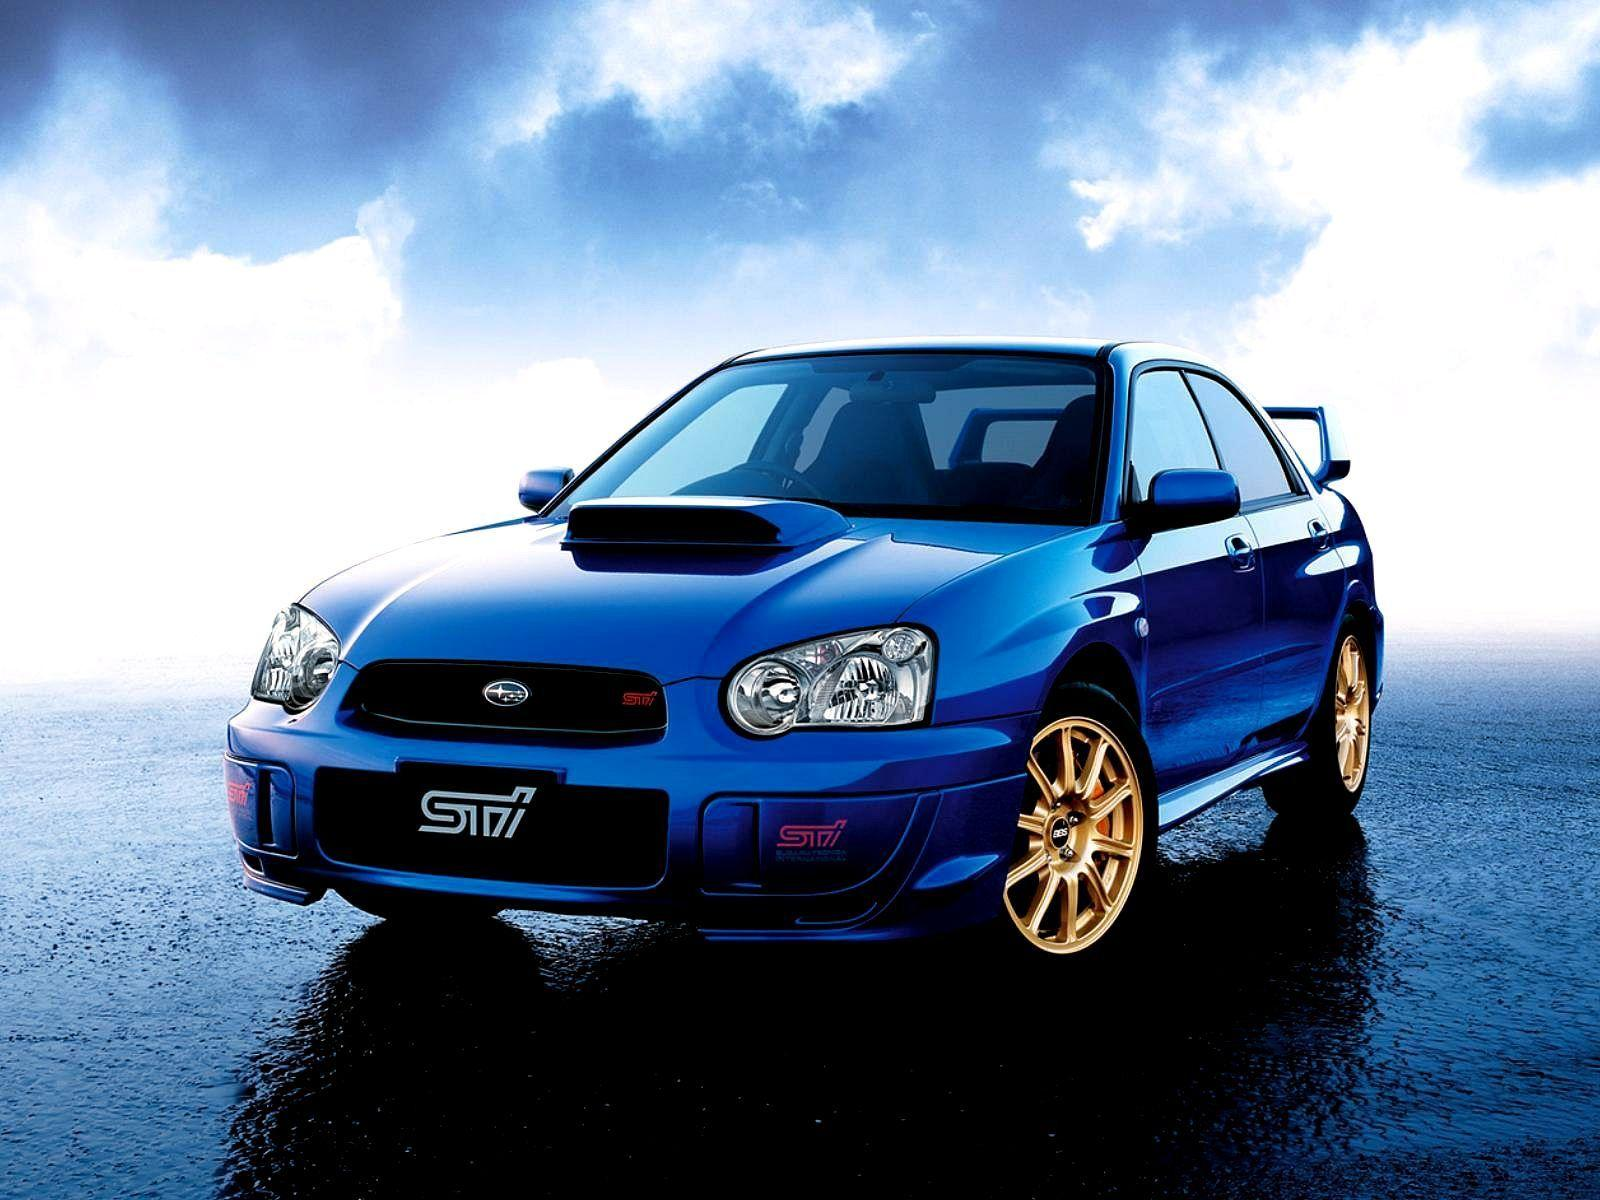 Subaru Impreza Wallpapers | HD Wallpapers Base | Impreza wrx ...